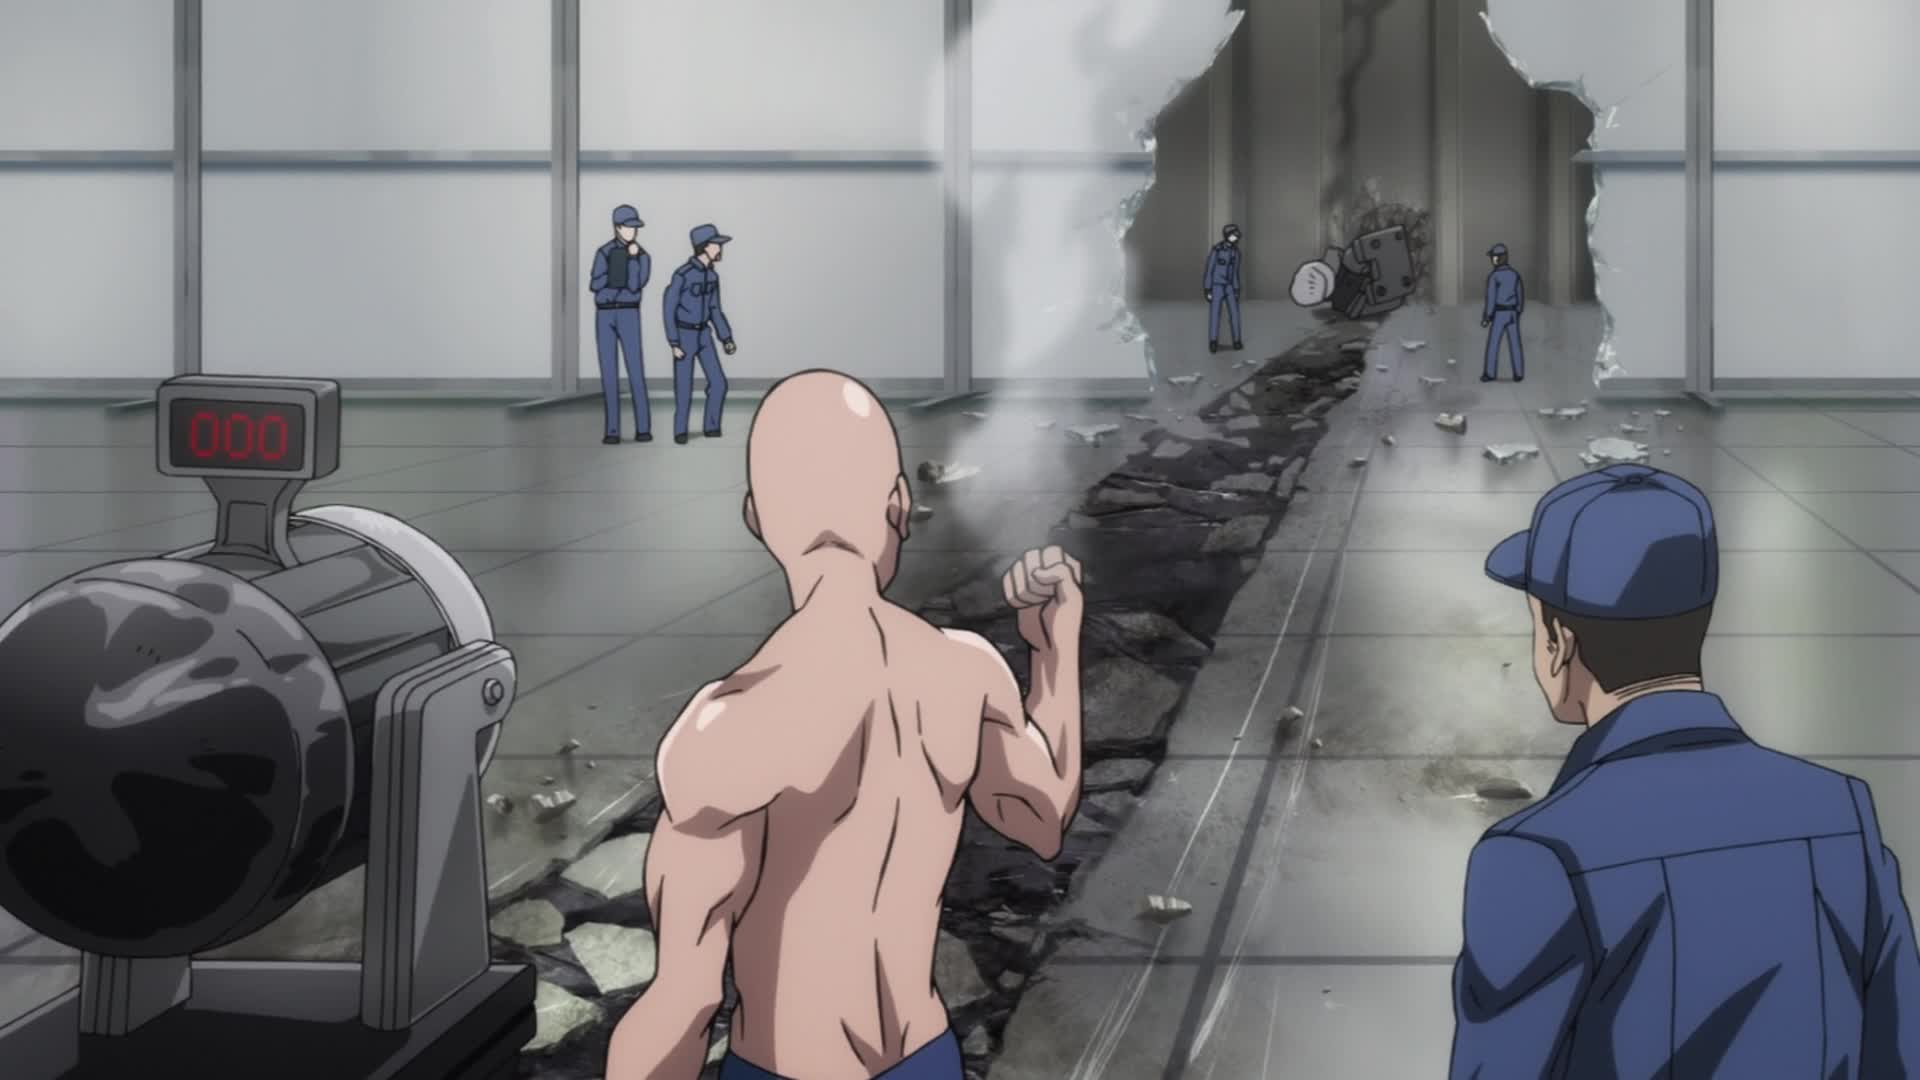 One_Punch_Man-5 - One Punch Man [Latino] [y subtitulado ] [Mega] [12/12] - Anime Ligero [Descargas]